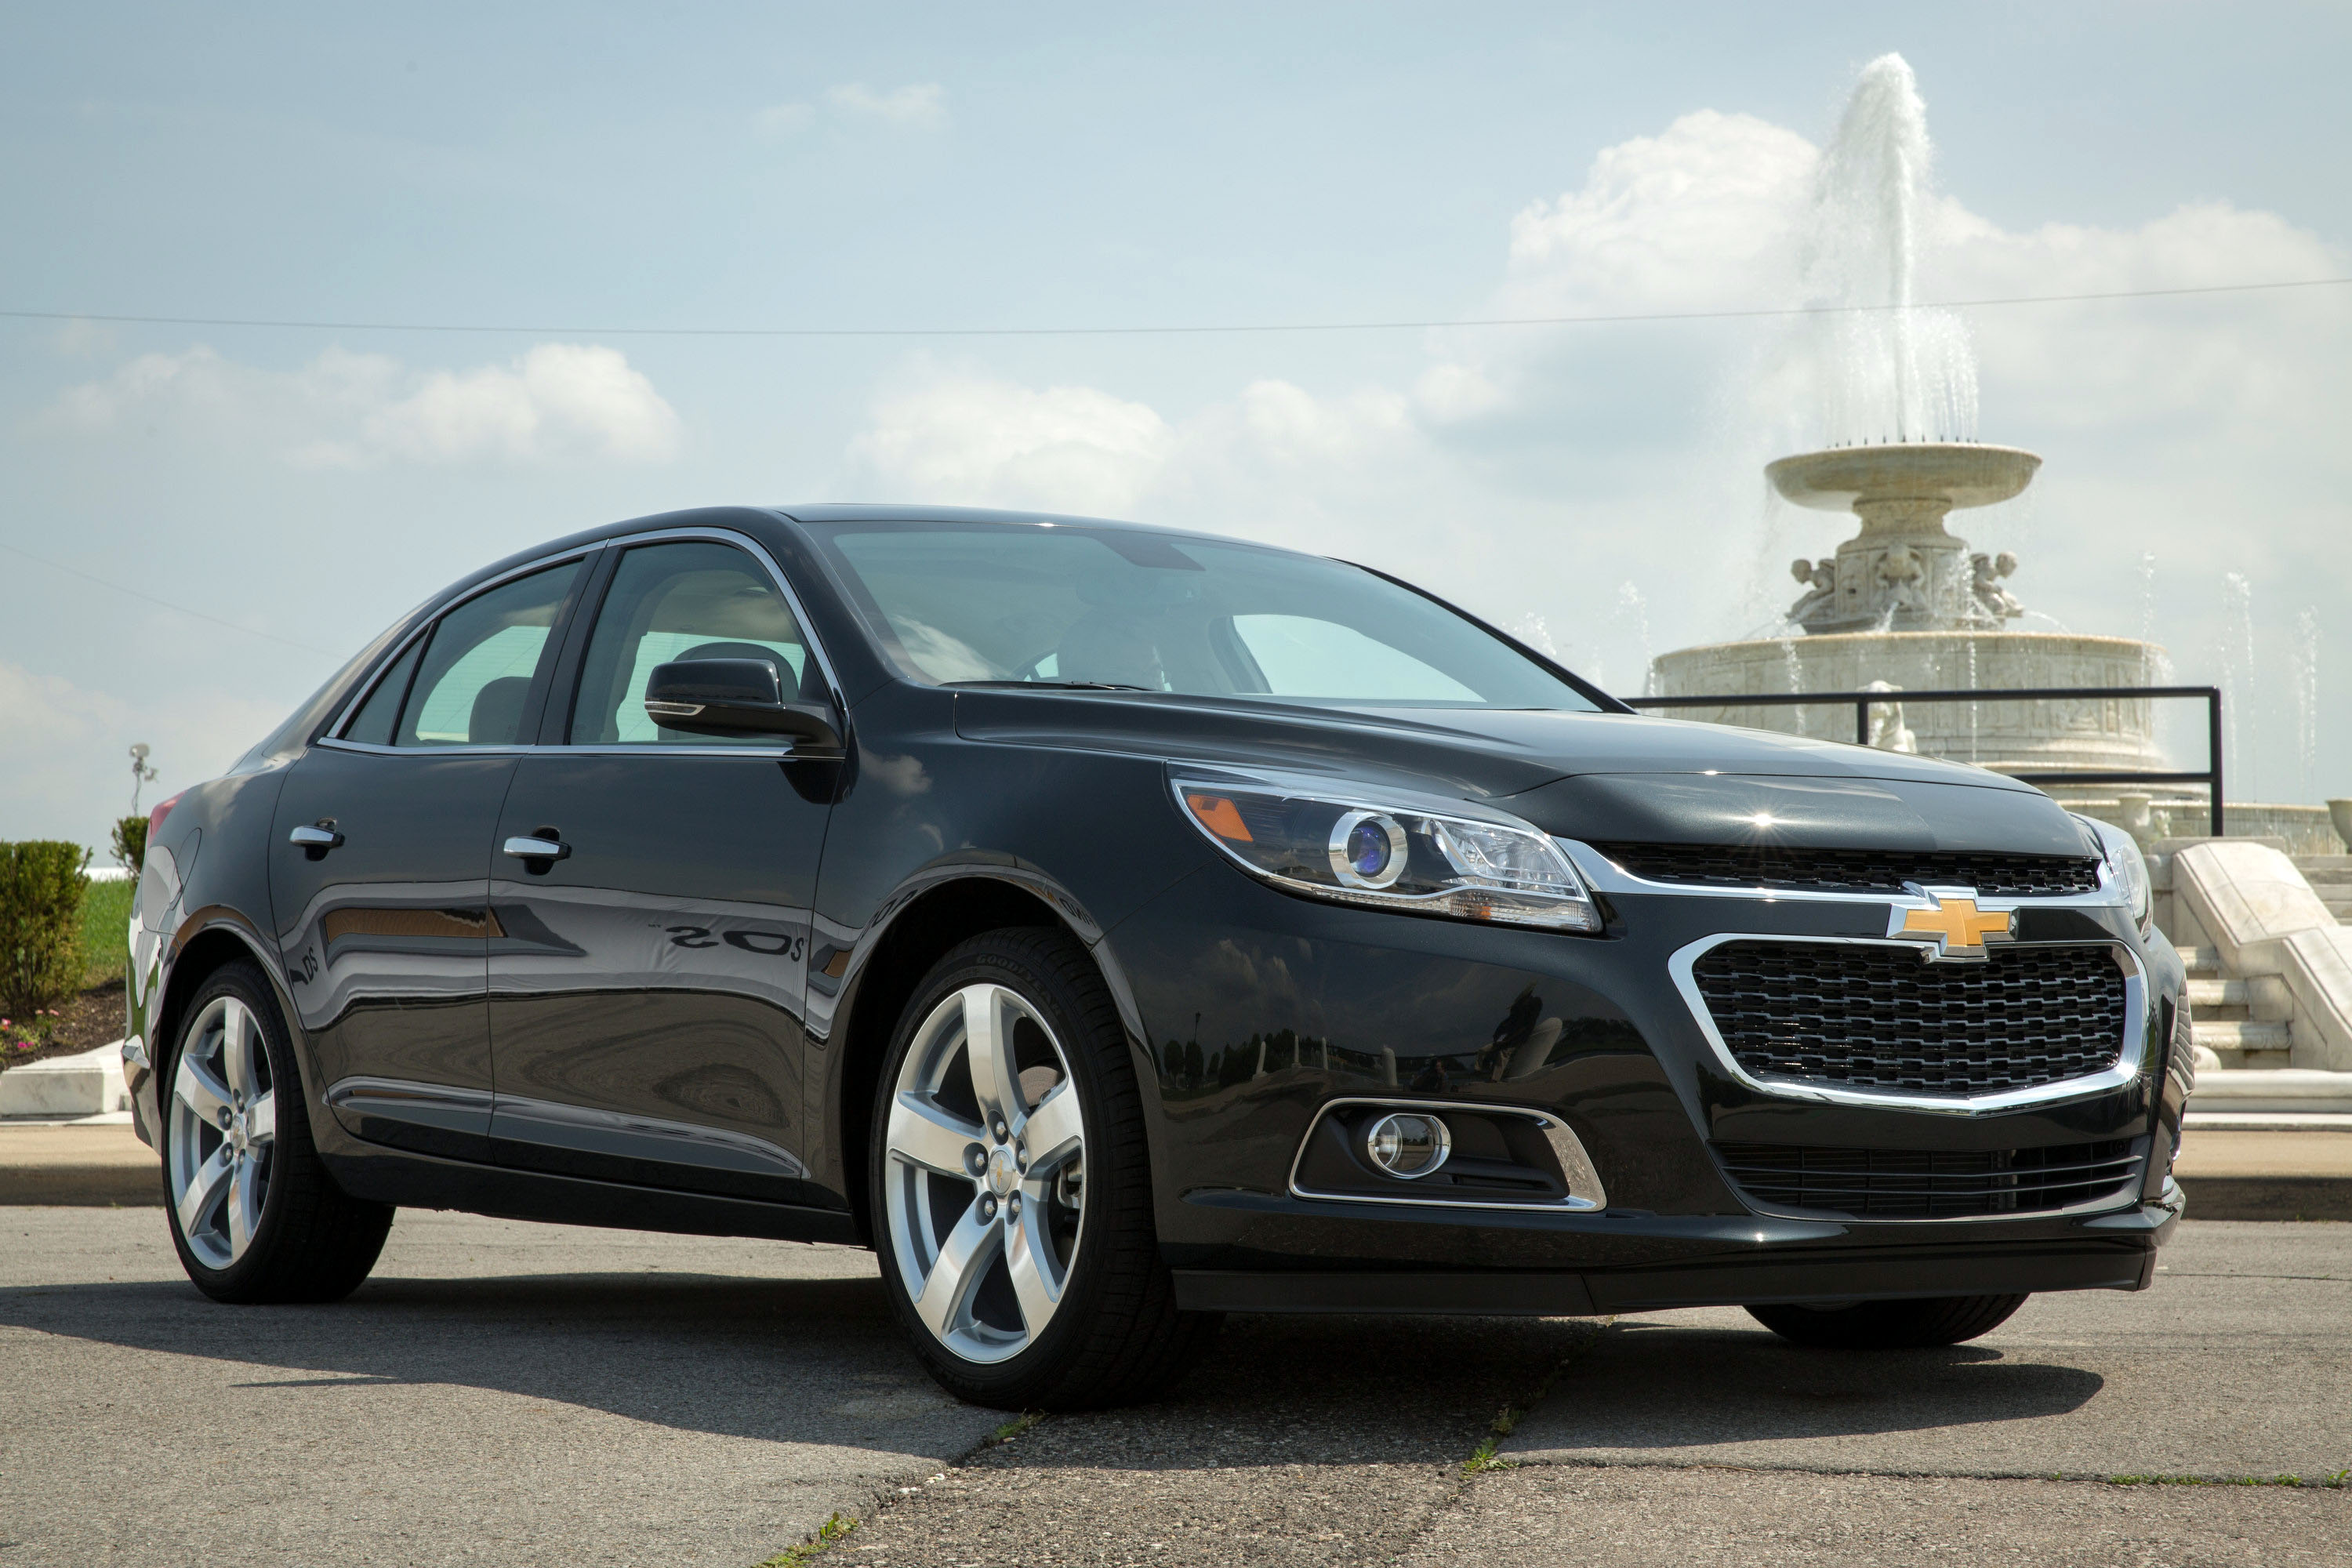 chevy malibu photos chevrolet recall and on of review fresh